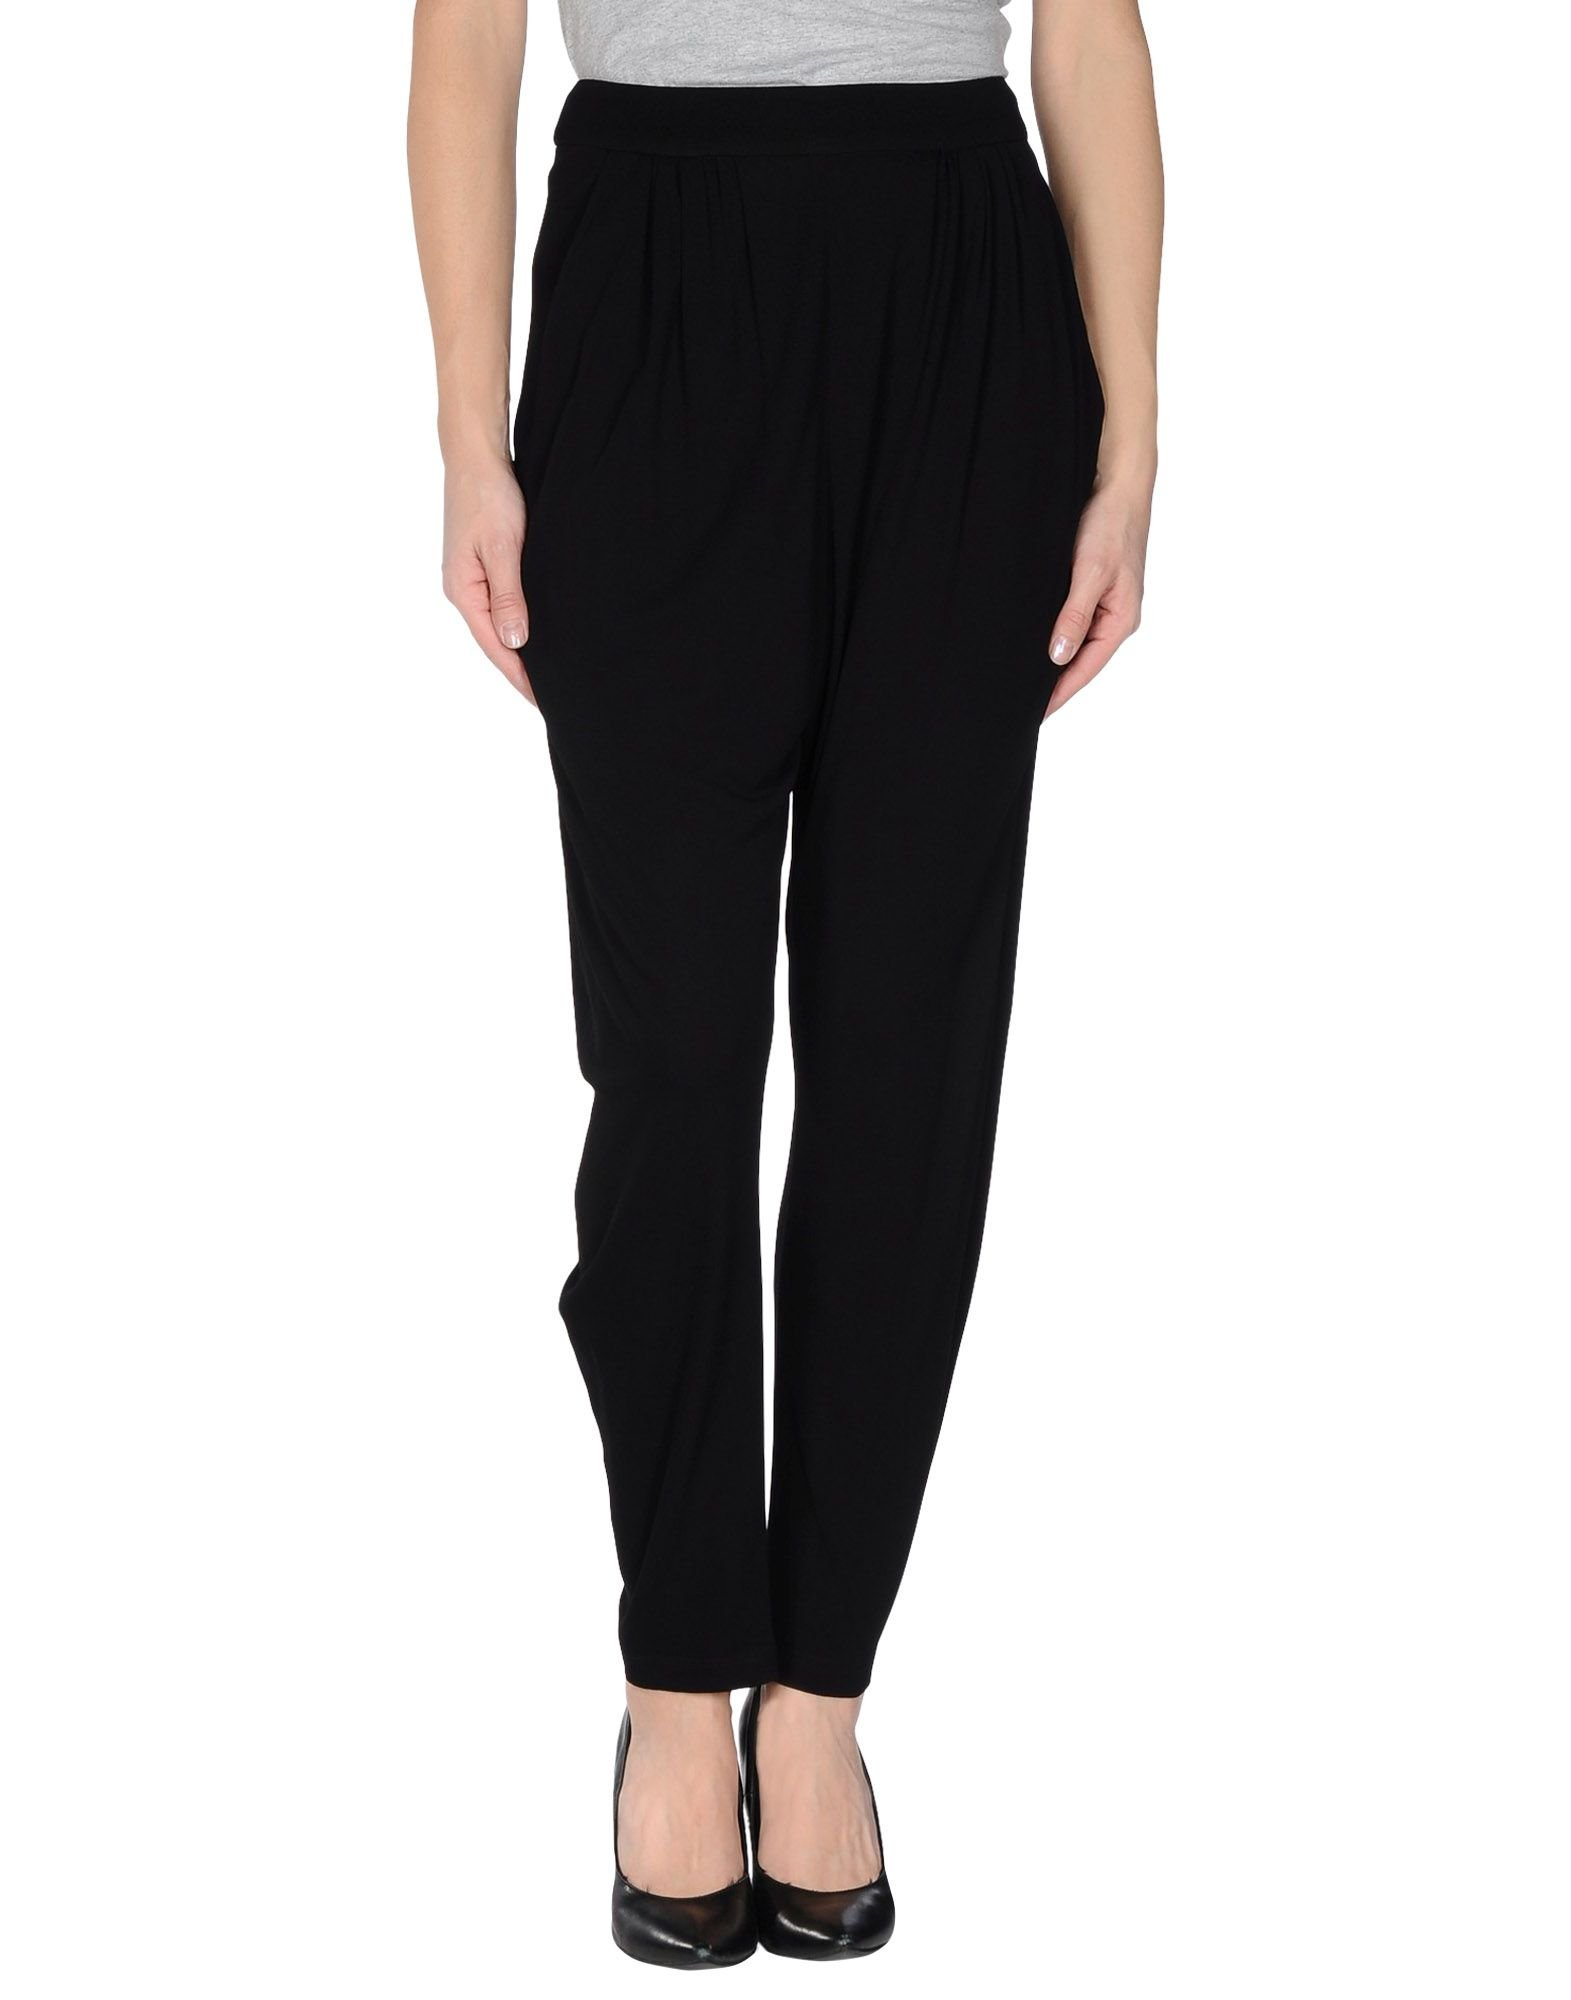 Putting a statement look together is simple when you start with a pair of our women's harem pants. Browse our affordable selection of cropped, patterned and classic harem pants perfect for casual and dressy events alike.